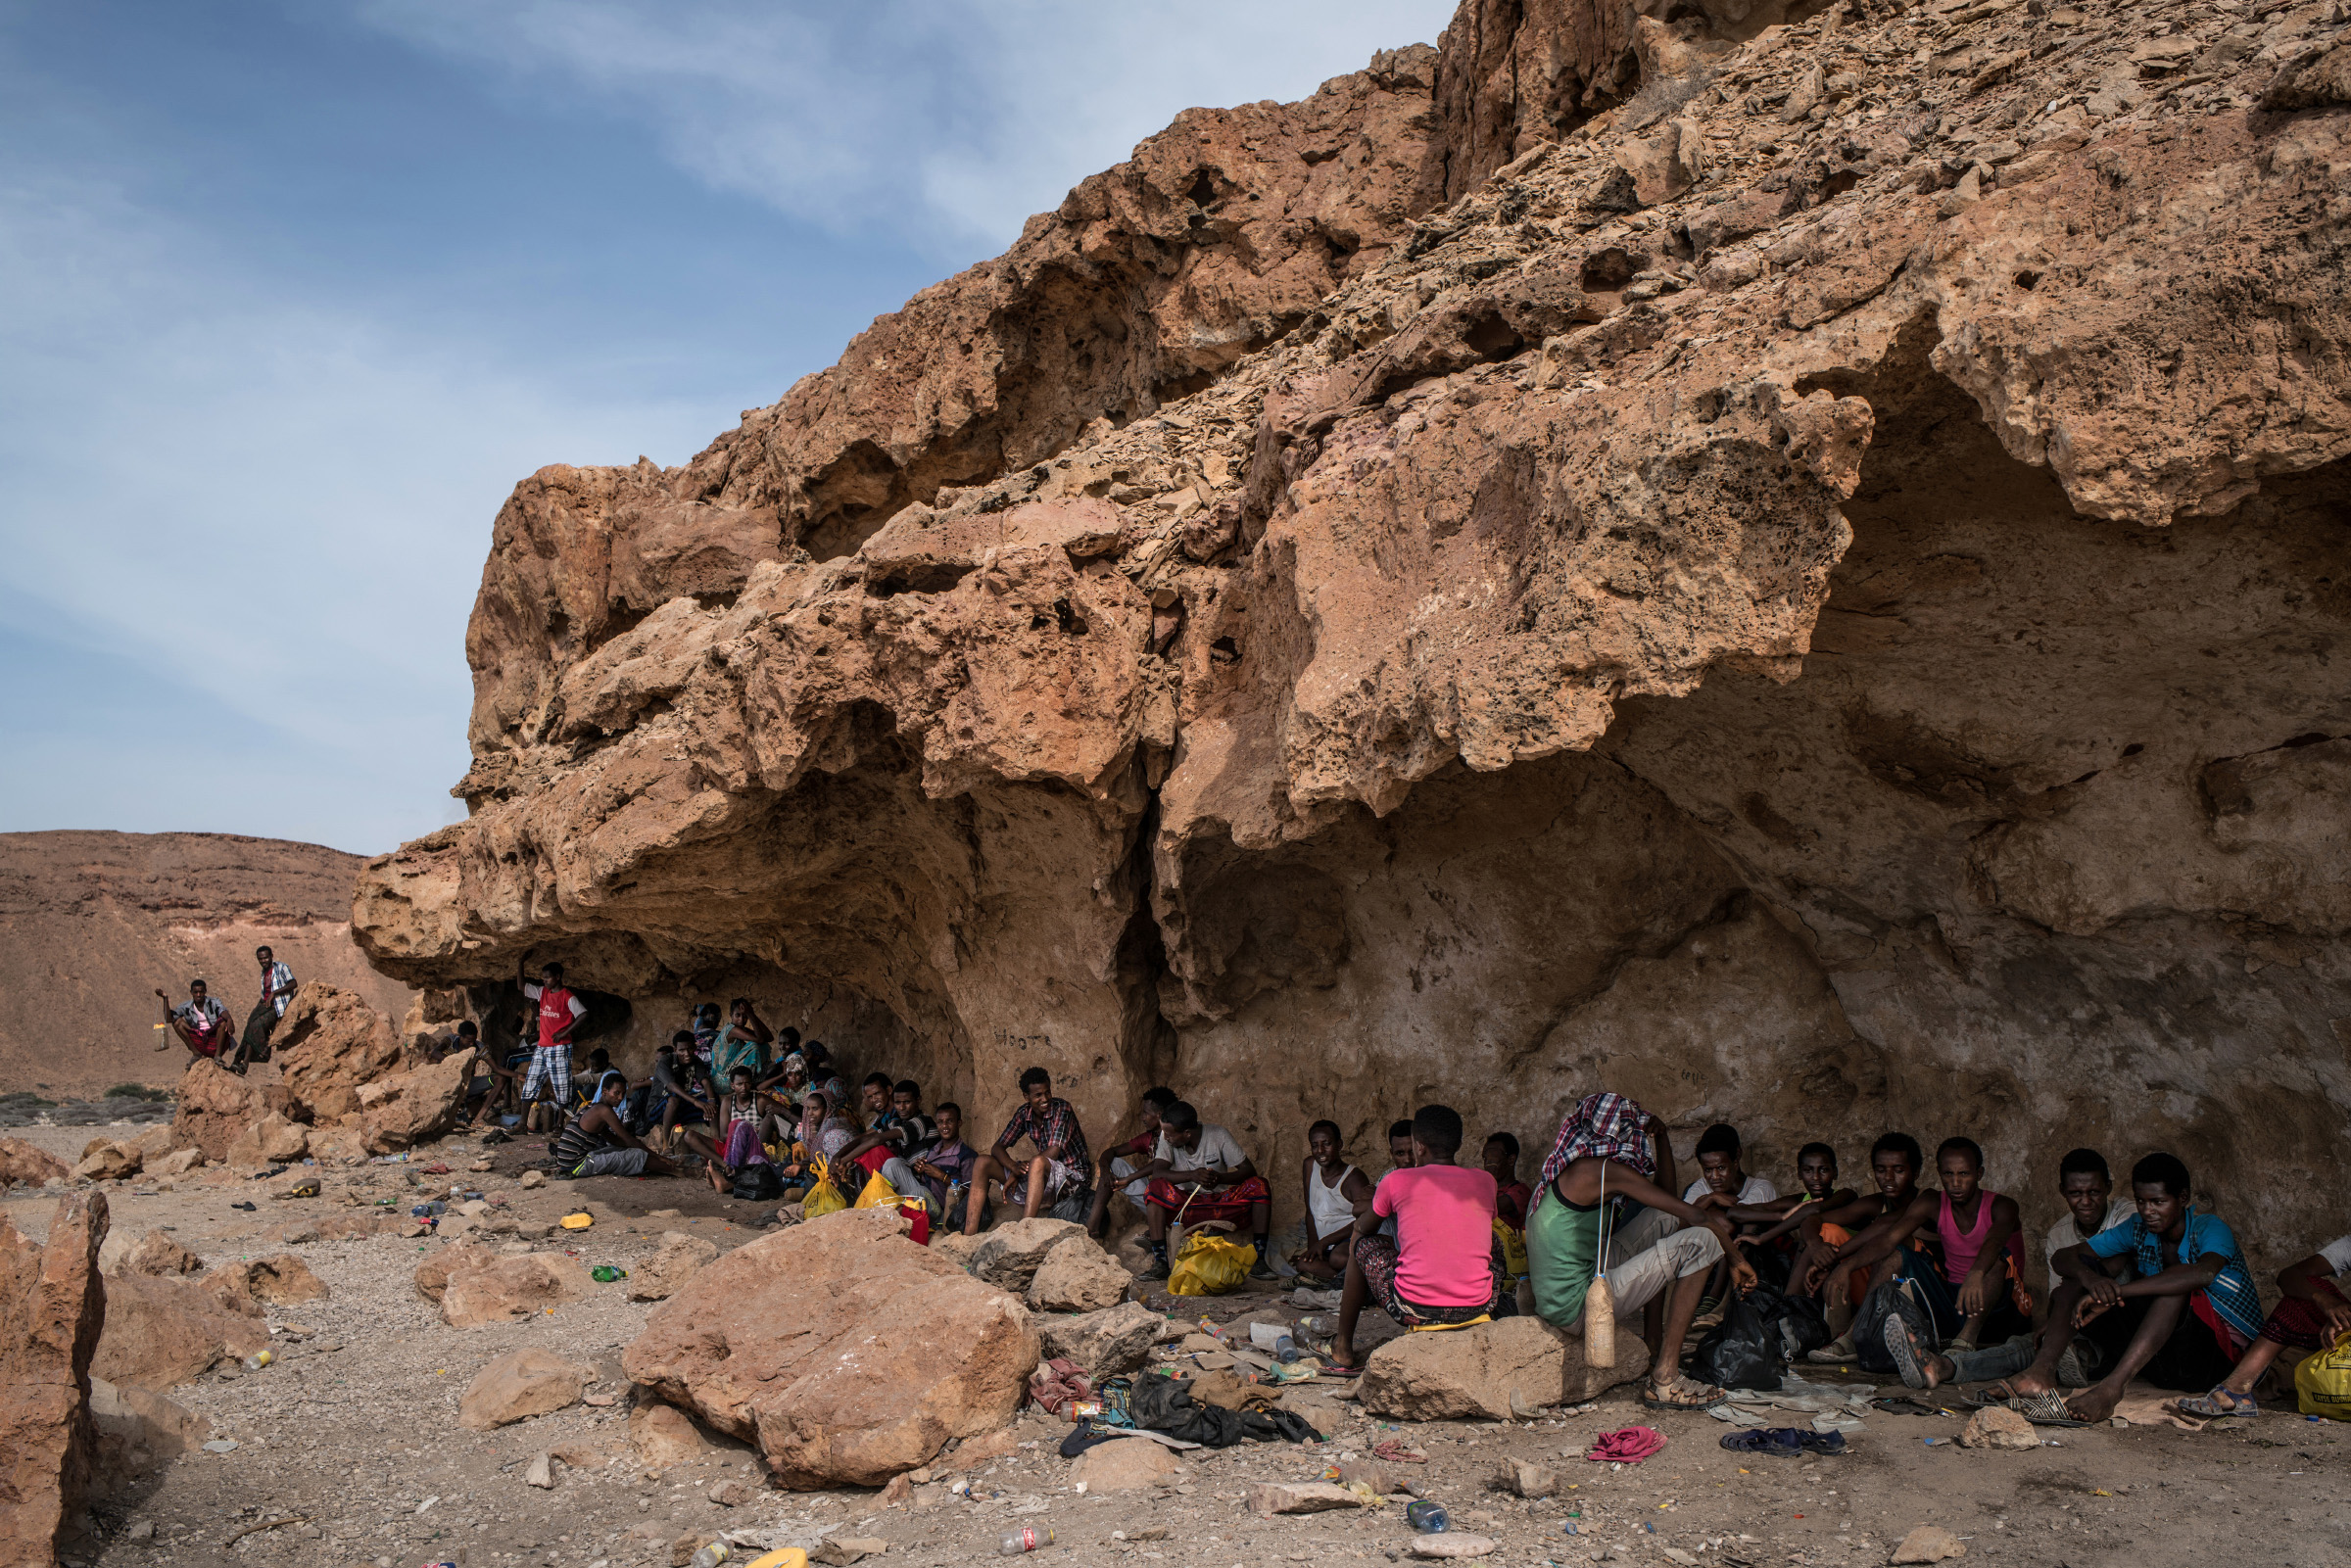 In Mareero, a smuggling hub in the semi-autonomous region of Puntland, Somali and Ethiopian migrants crowd into caves to wait for the dhow boats that will carry them on the perilous journey across the Gulf of Aden to Yemen. (Photo by Nichole Sobecki/GroundTruth)